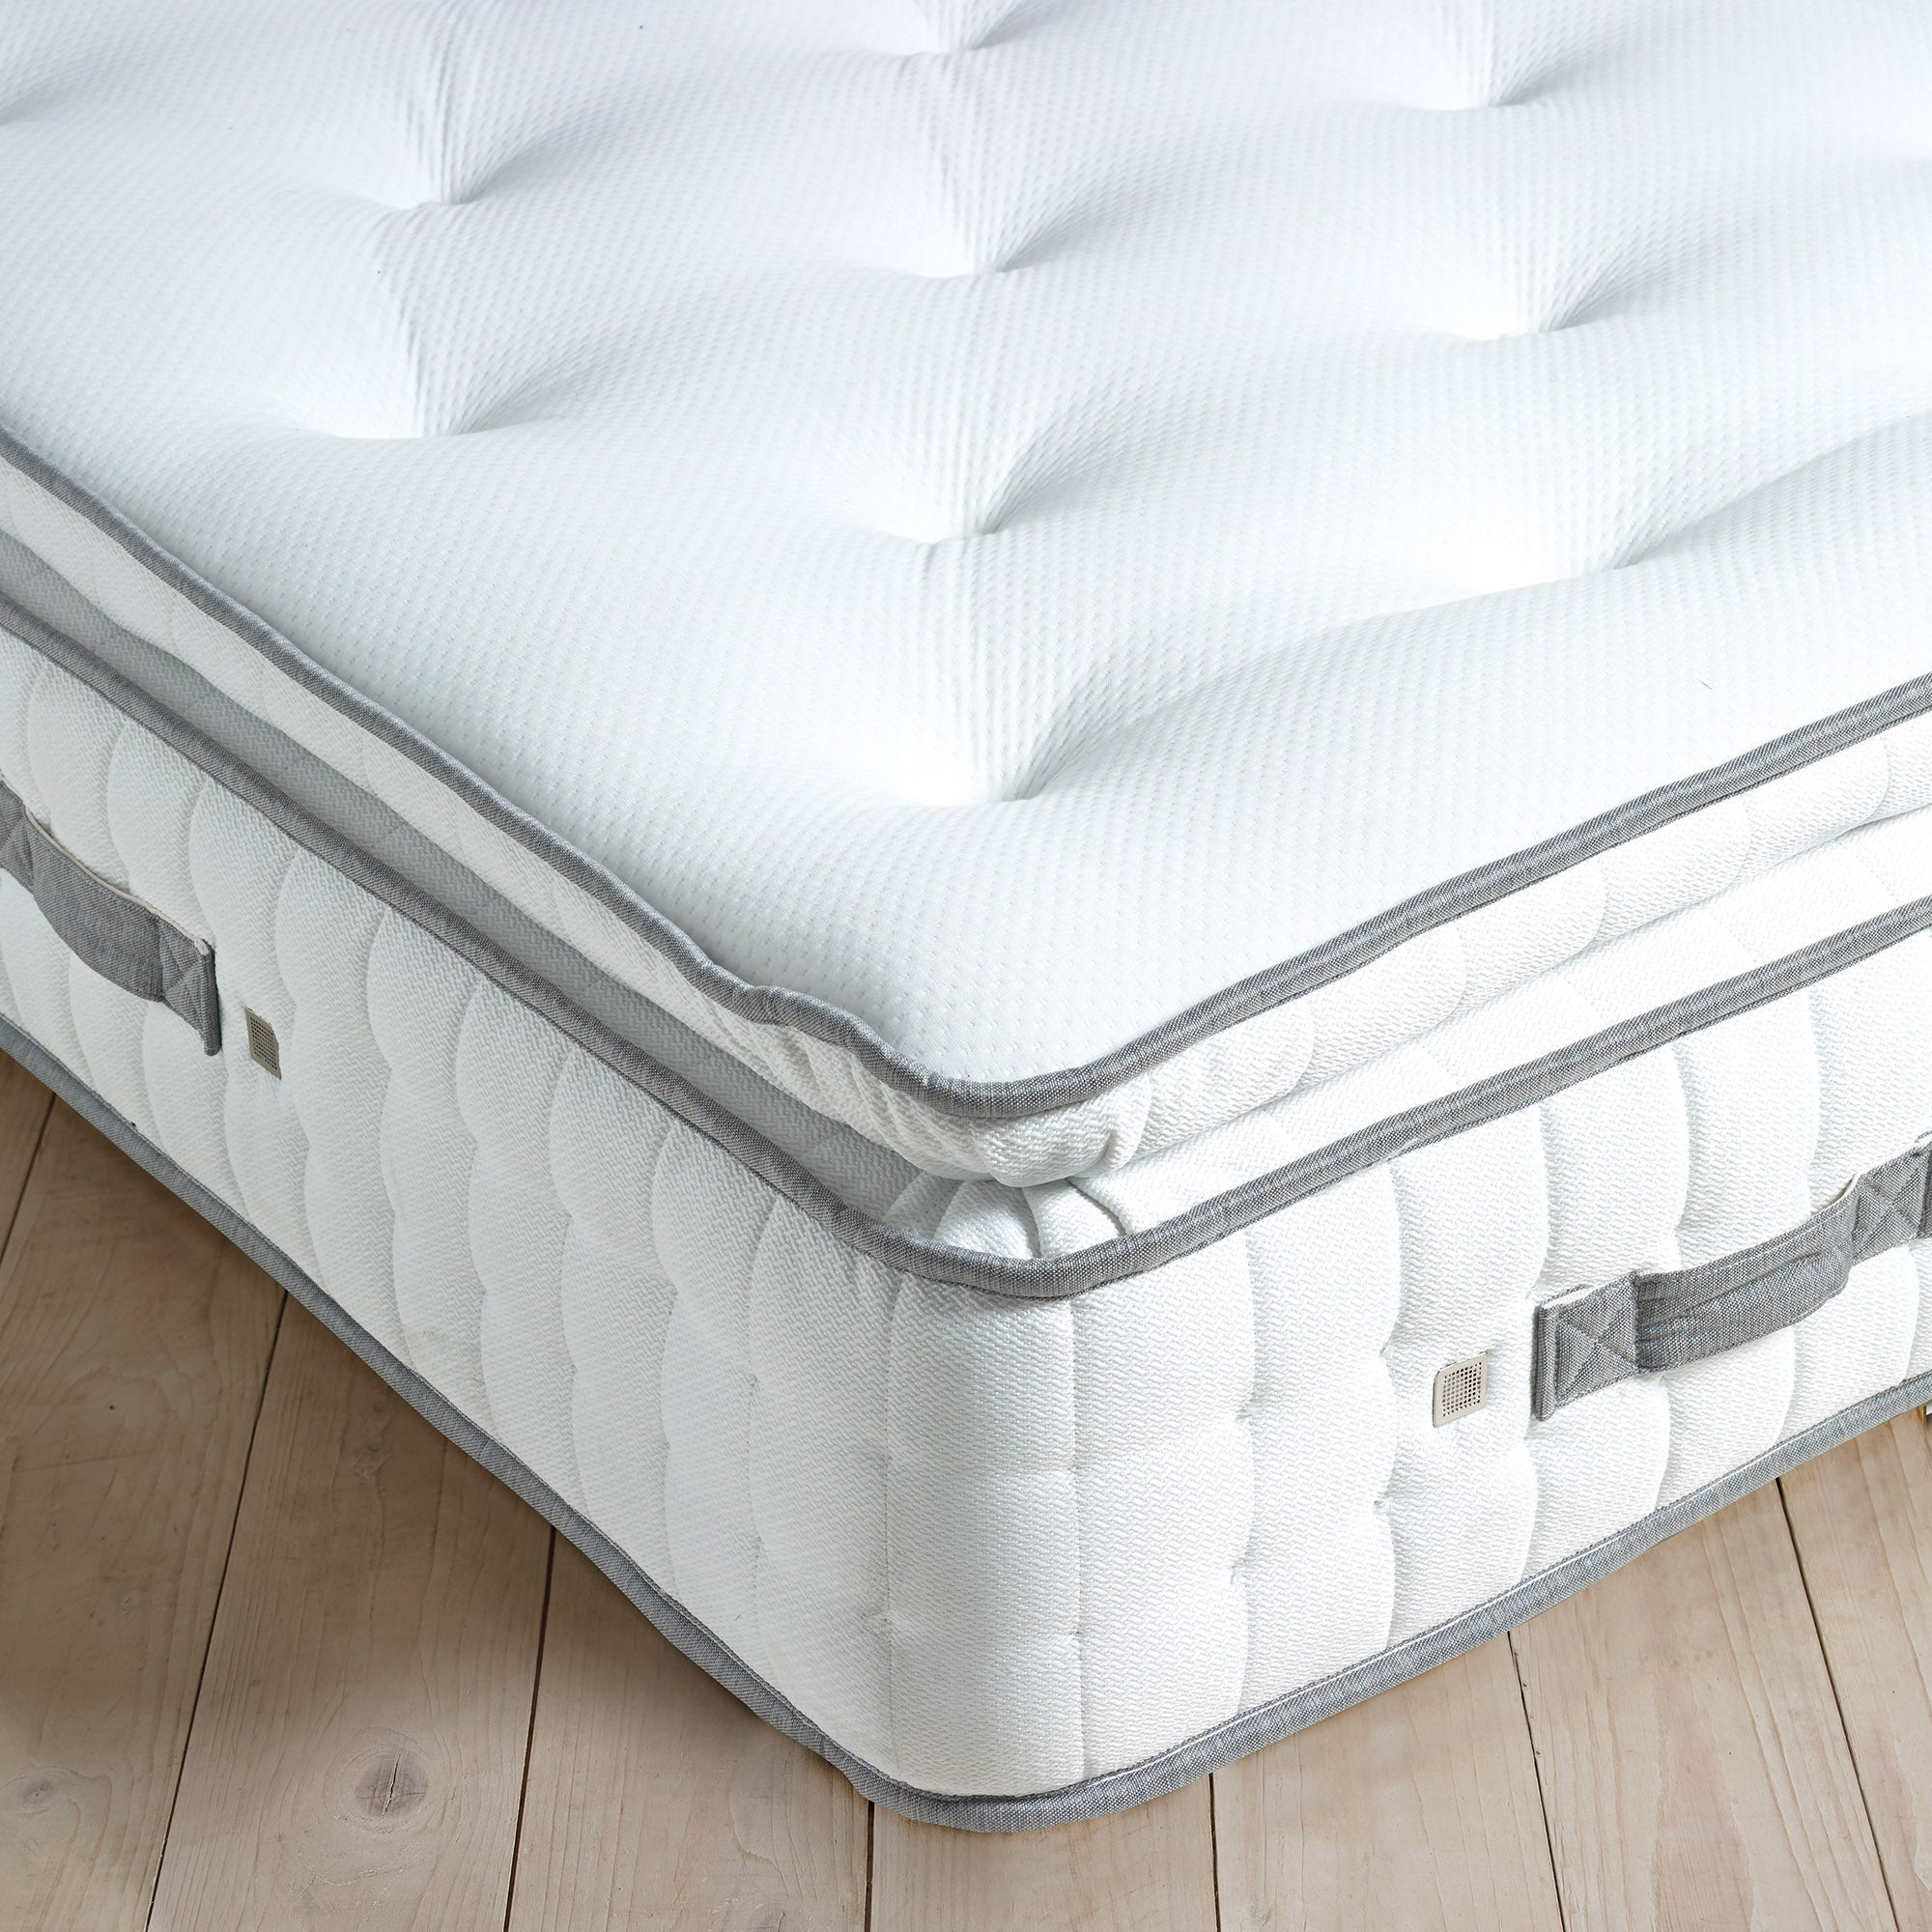 Image of Hotel 2000 Memory Foam Pillow Top Mattress White